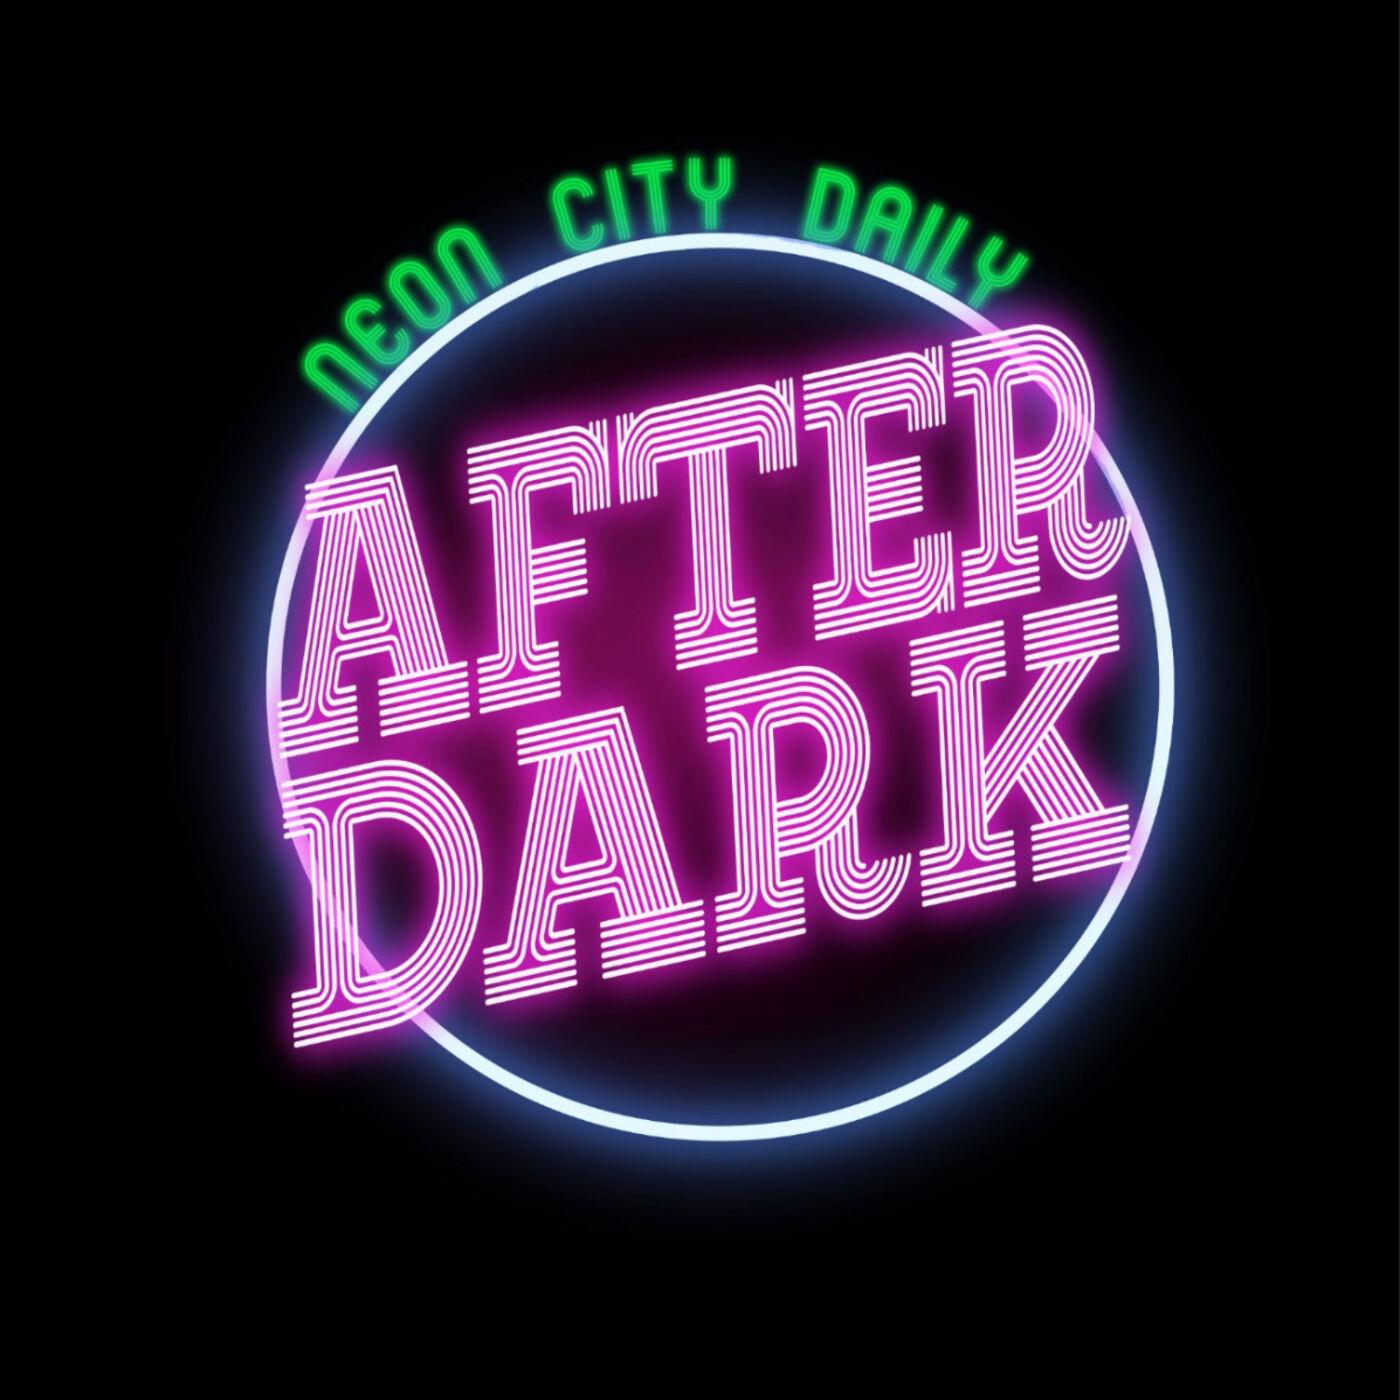 Neon City Daily After Dark: Episode 11